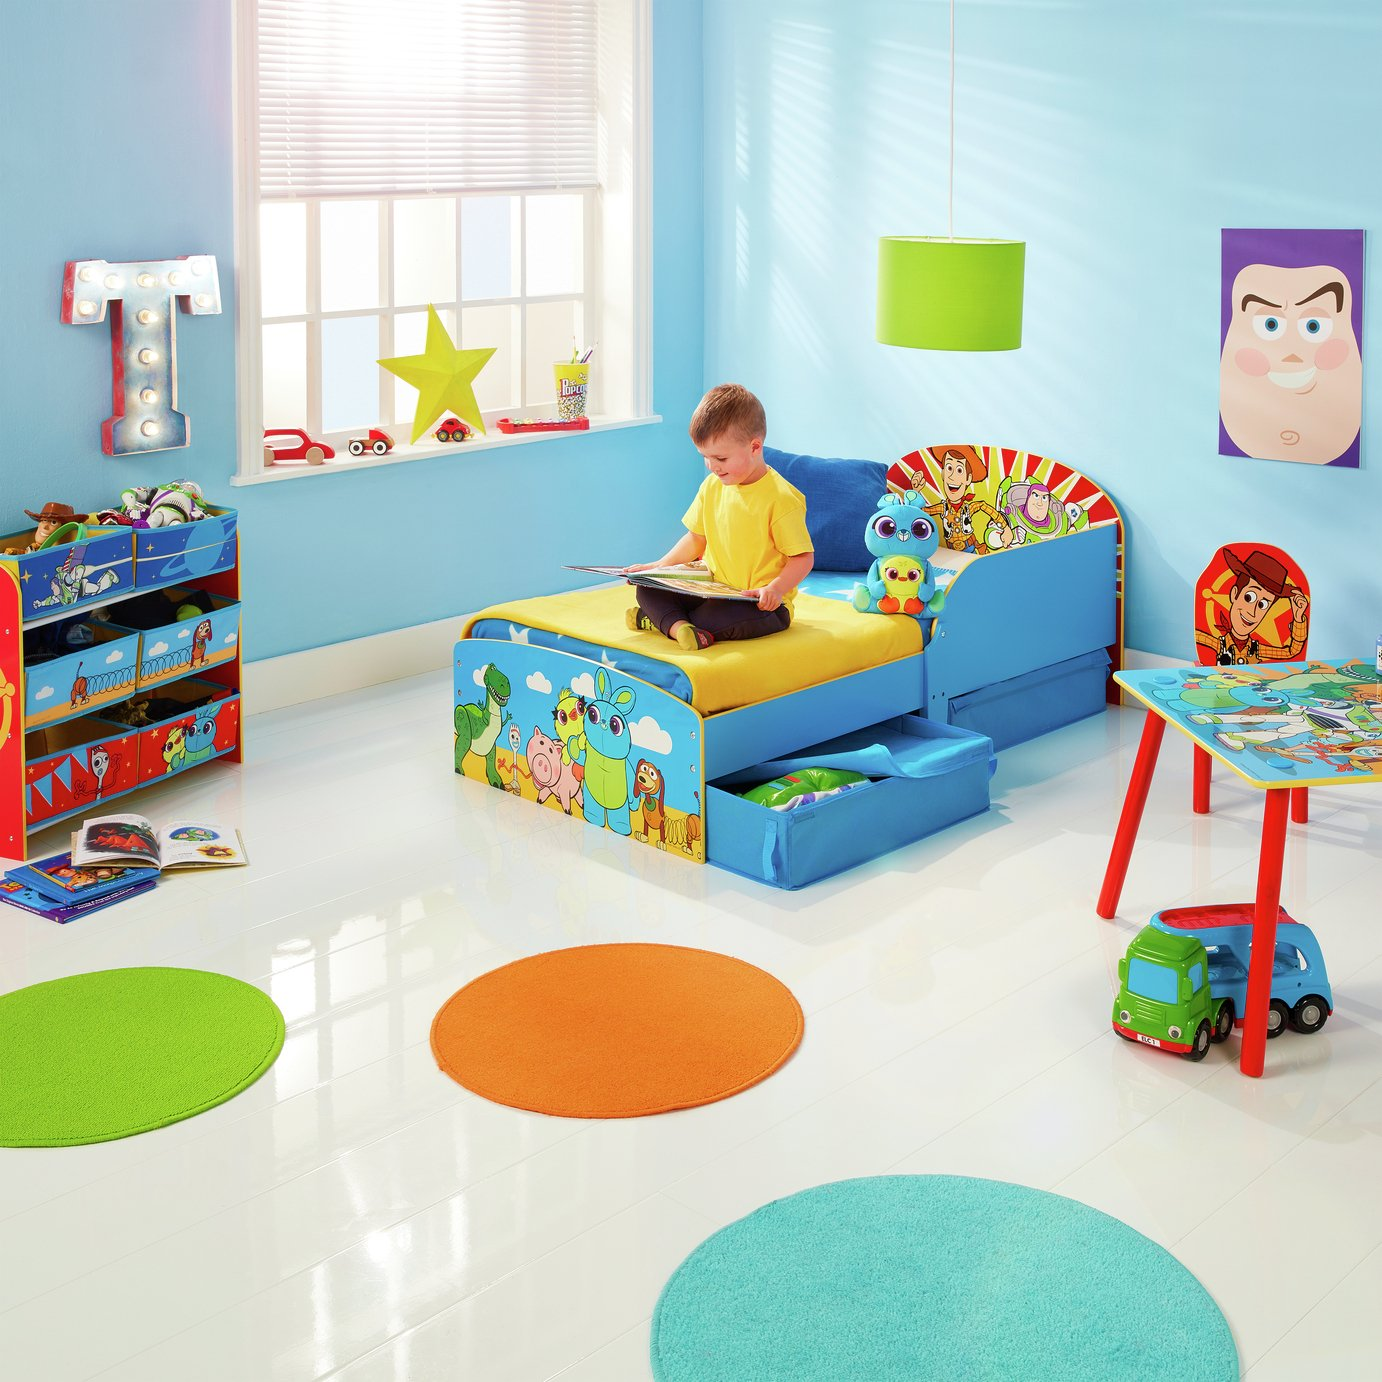 Disney Toy Story Toddler Bed with Drawers & Mattress